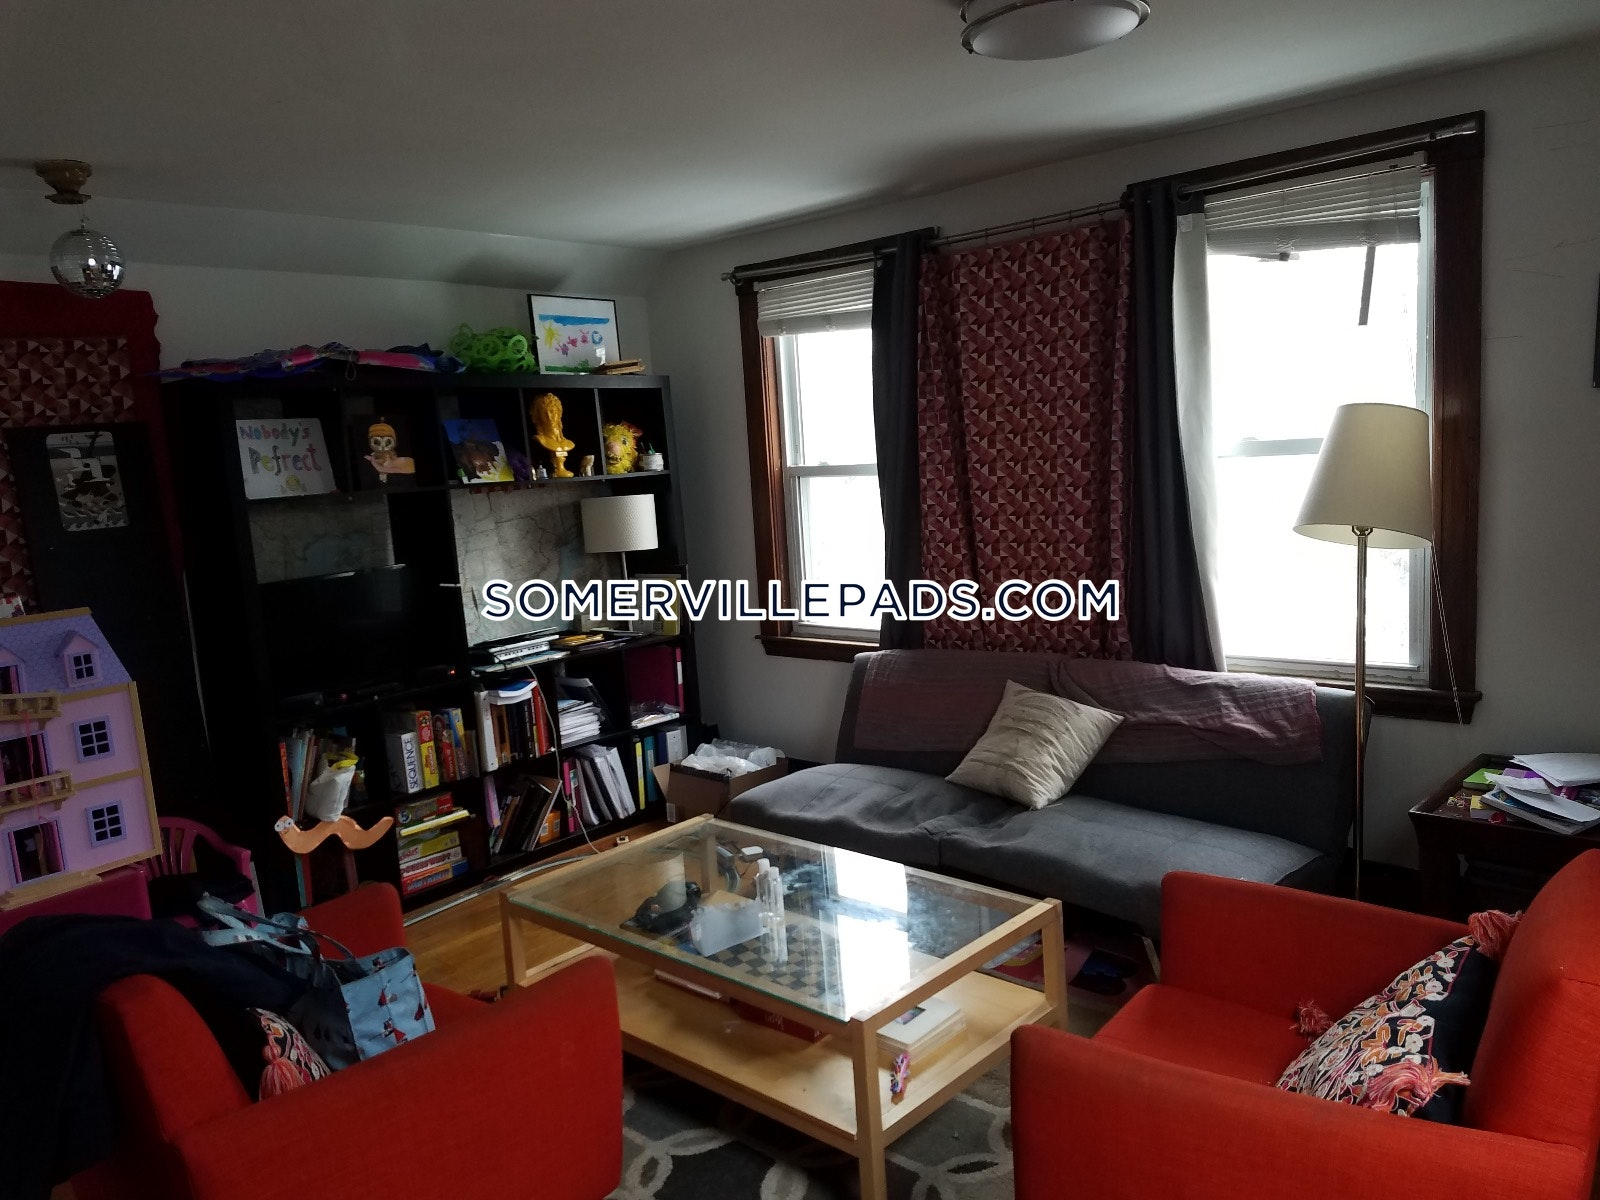 3-beds-1-bath-somerville-west-somerville-teele-square-2350-454012